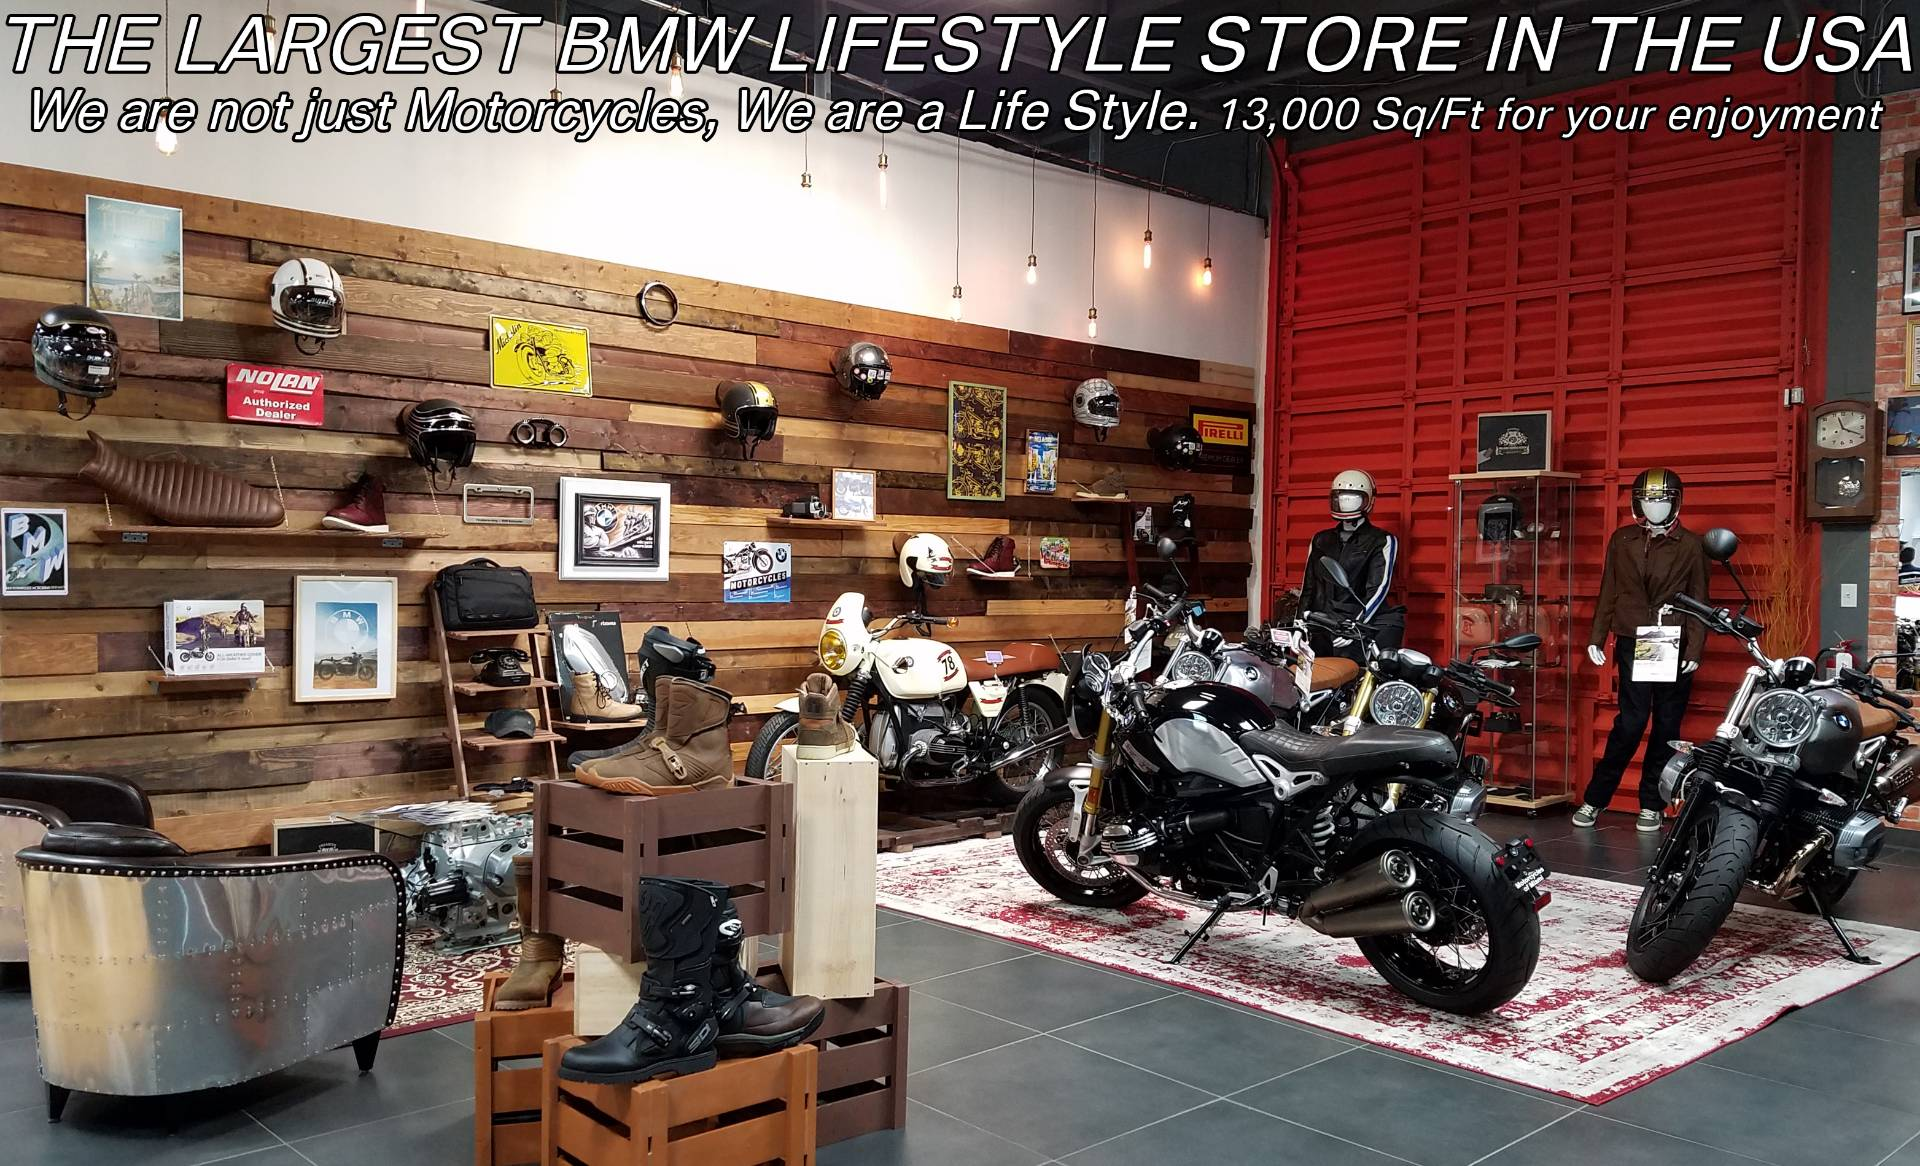 Used 2017 BMW R 1200 GS for sale, Pre-owned BMW R 1200 GSA for sale, BMW Motorcycle, used BMW Rally, Dual, Spirit of GS, BMW Motorcycles of Miami, Motorcycles of Miami, Motorcycles Miami, New Motorcycles, Used Motorcycles, pre-owned. #BMWMotorcyclesOfMiami #MotorcyclesOfMiami